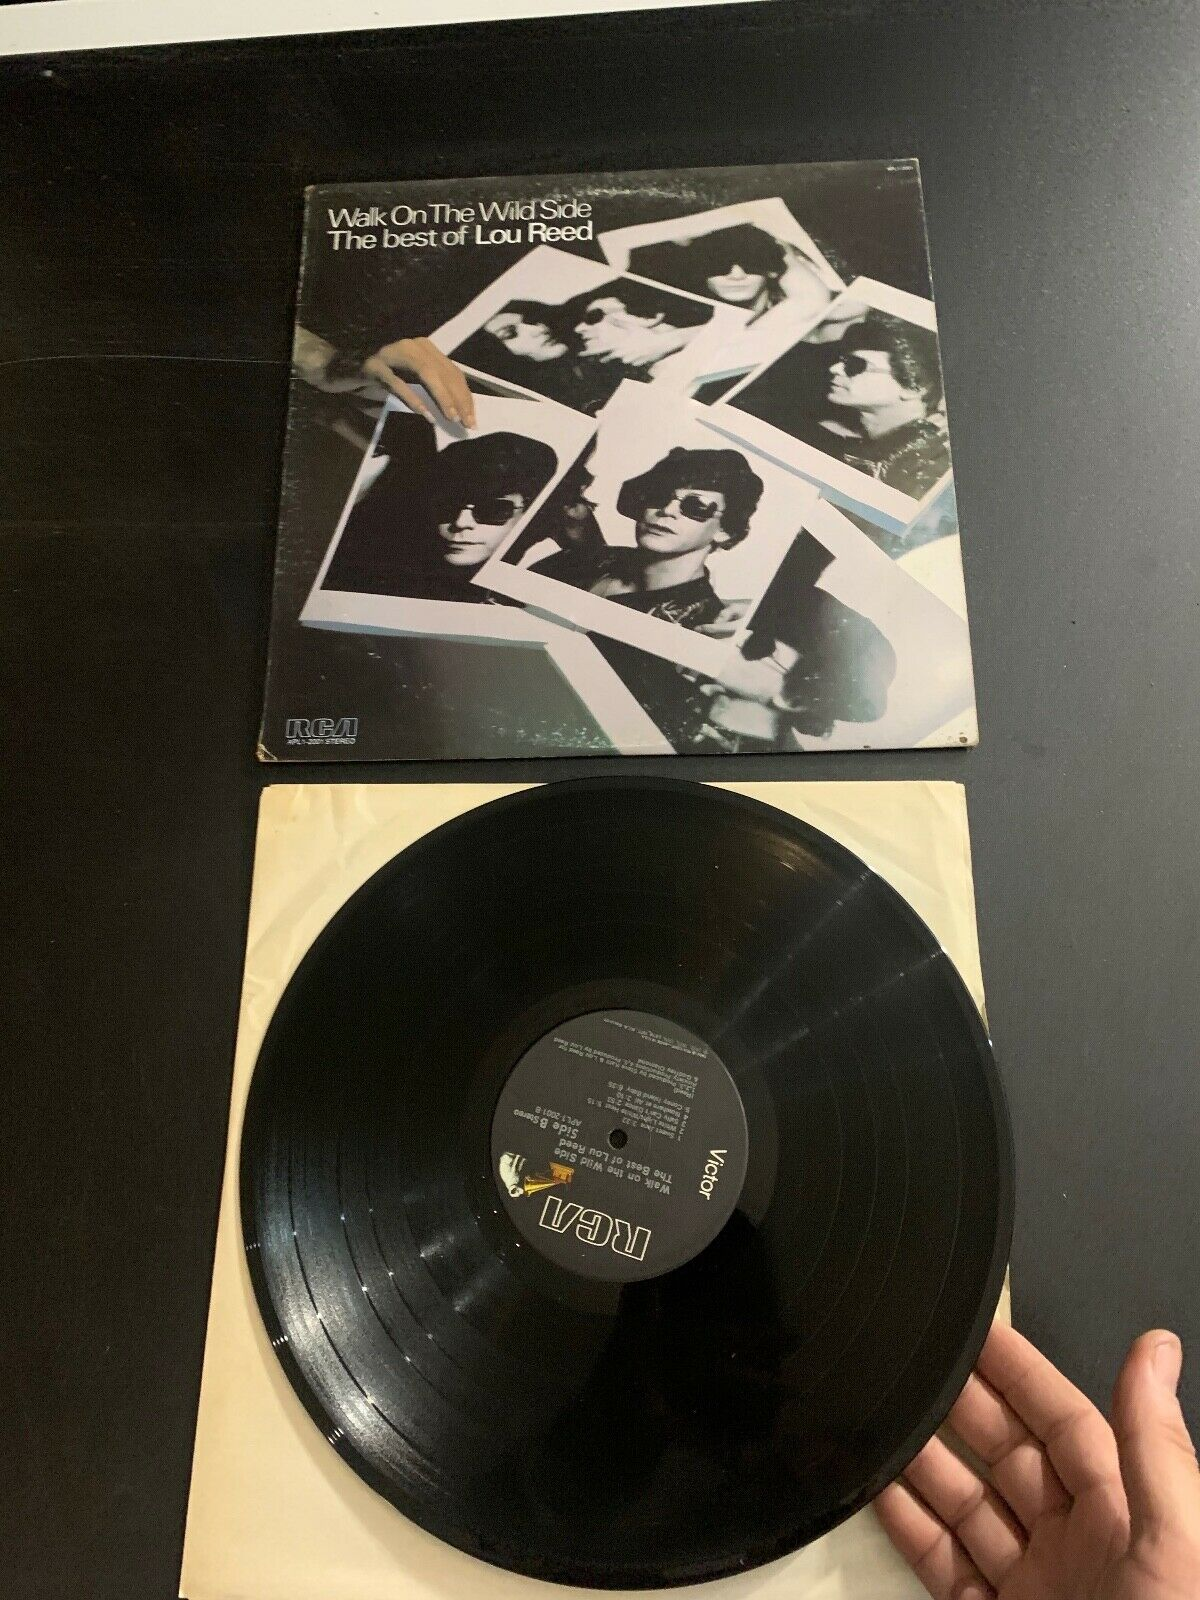 LP RECORD - LOU REED - WALK ON THE WILD SIDE THE BEST OF - RCA RECORDS  - $9.99